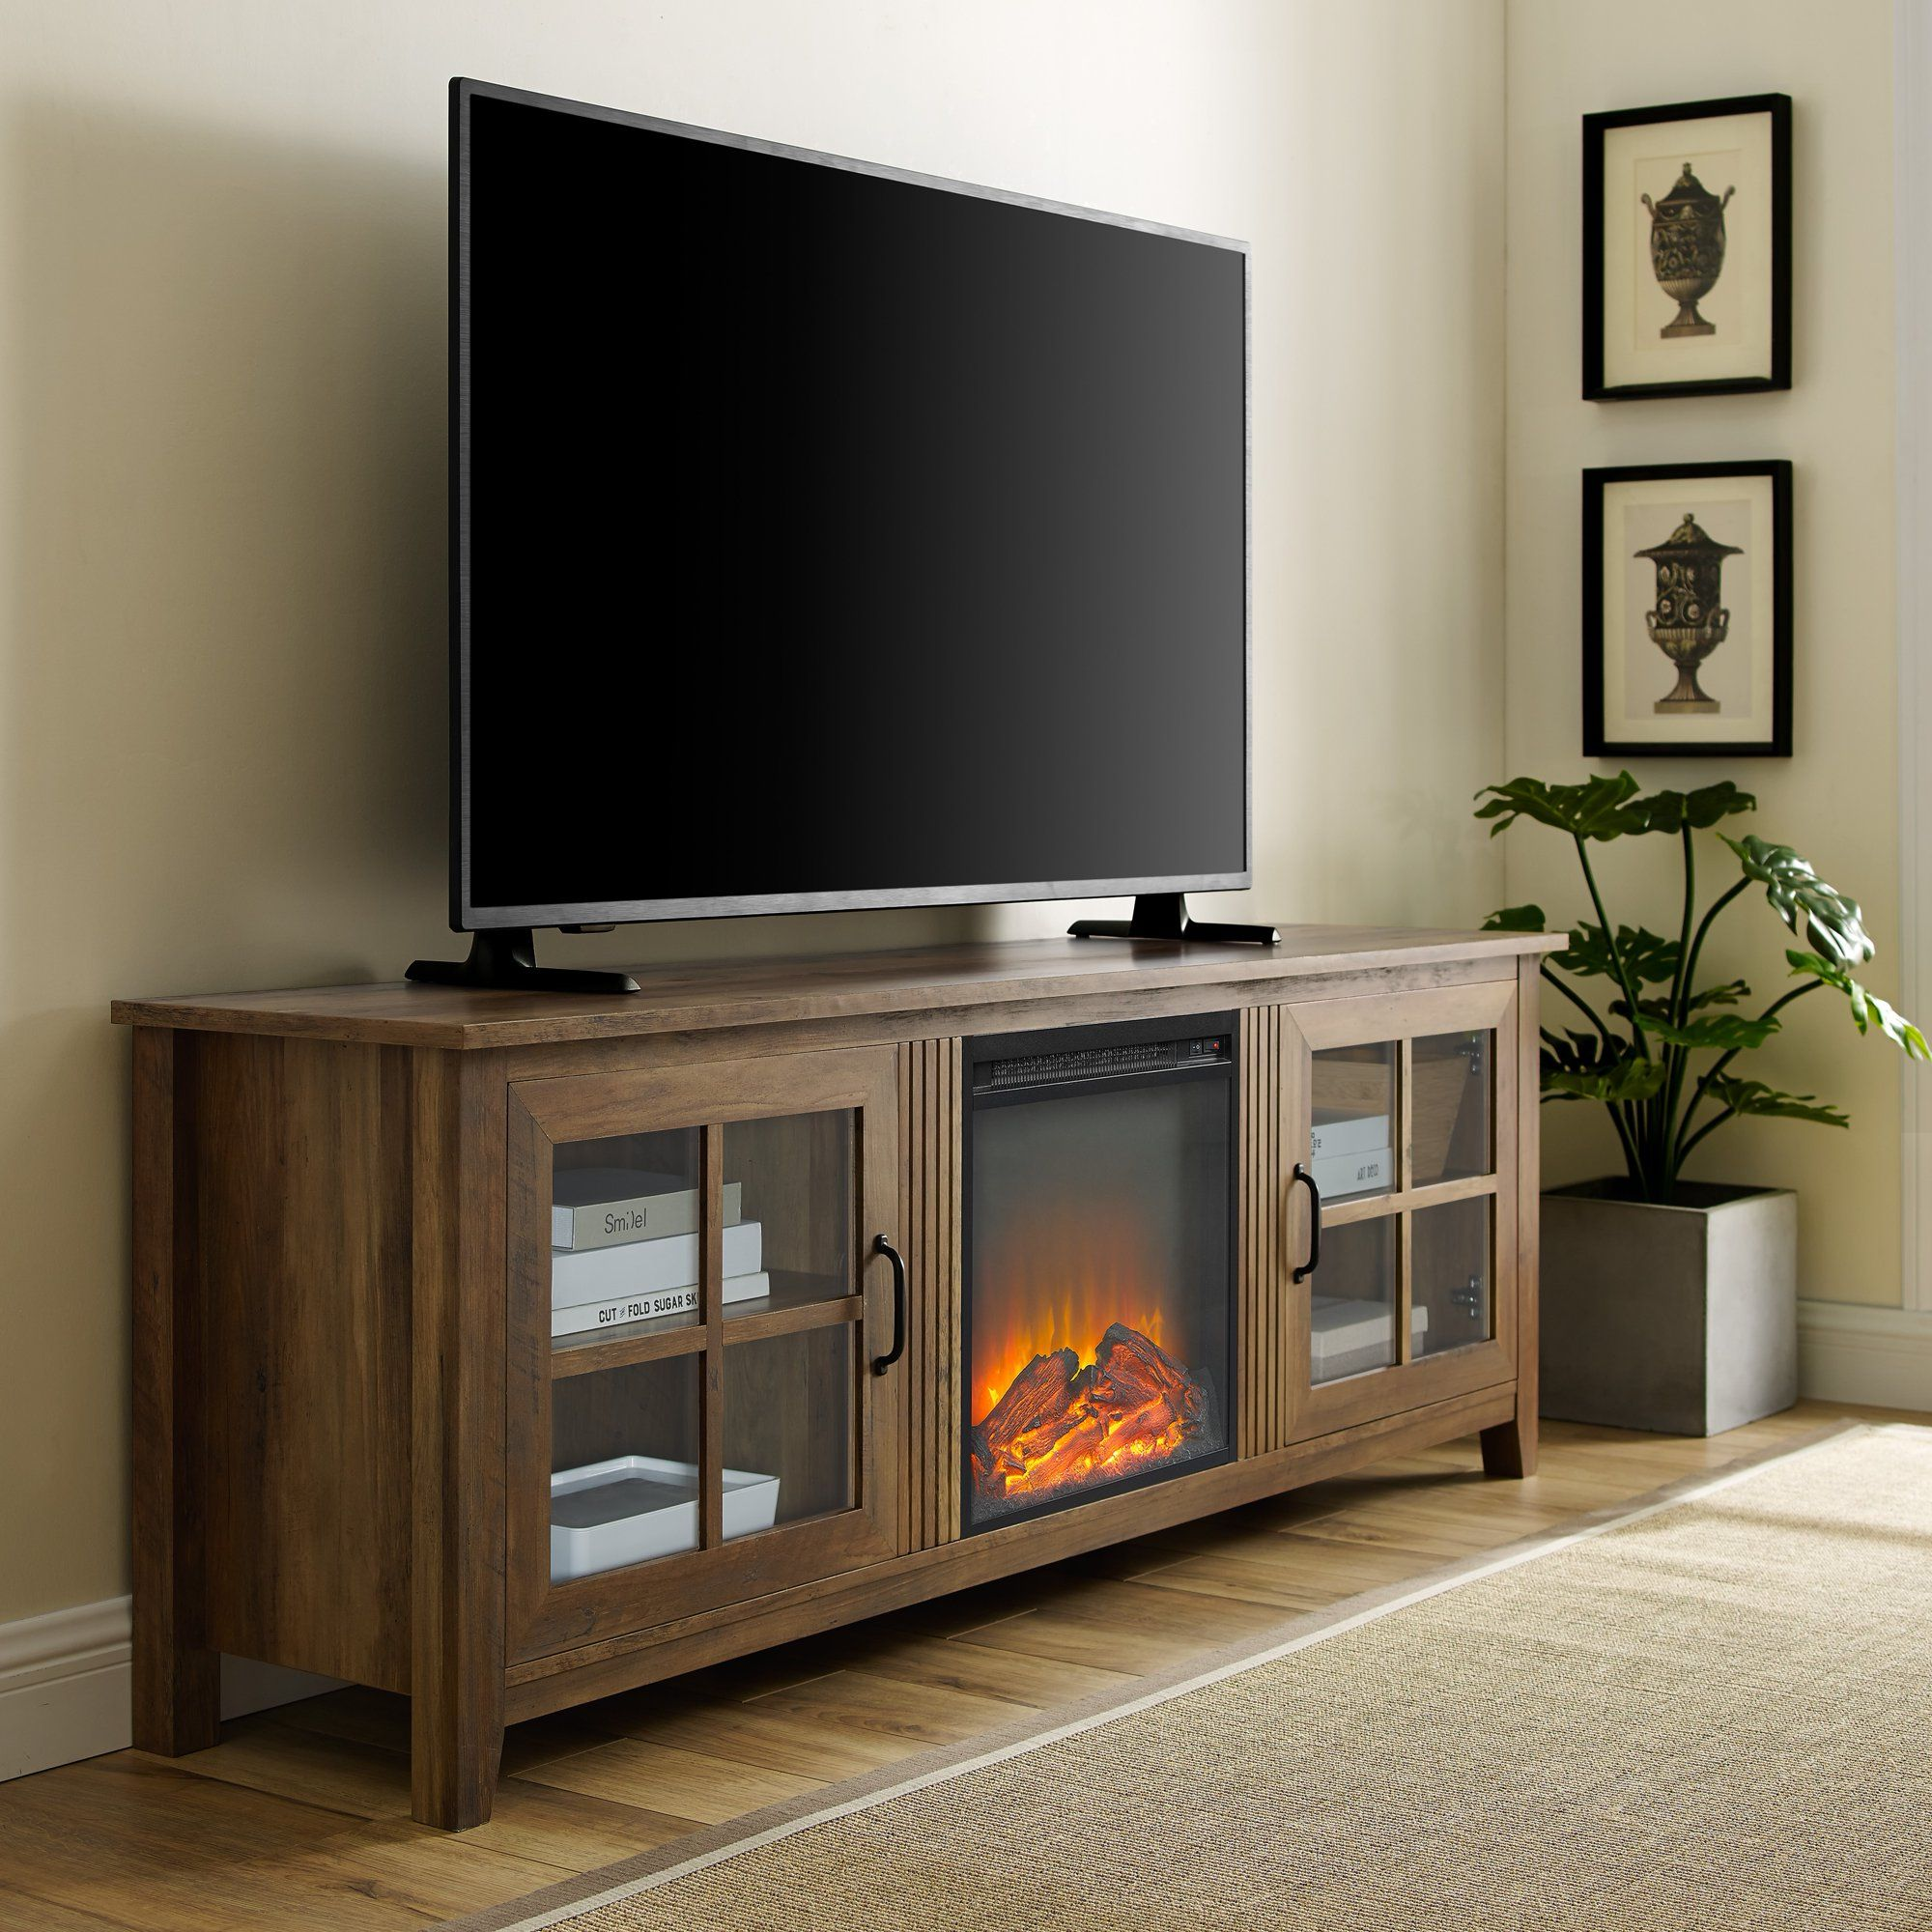 16+ Modern farmhouse tv stand with fireplace inspiration